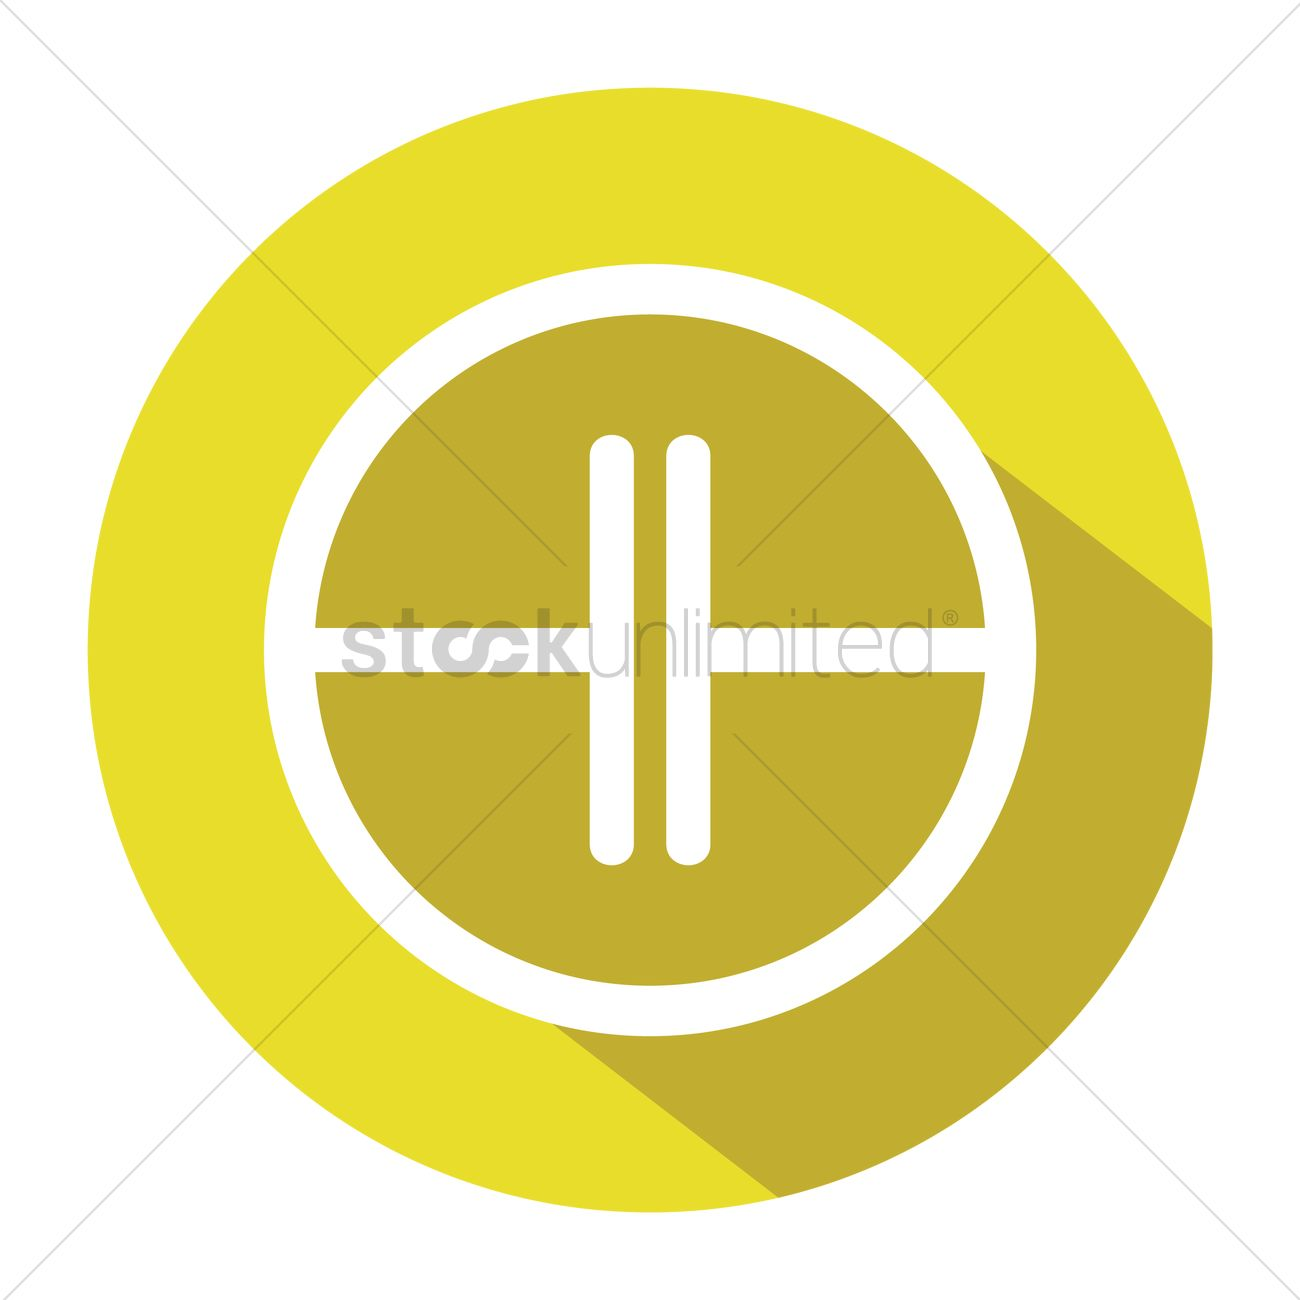 Free Electric circuit symbol for capacitor Vector Image - 1248265 ...